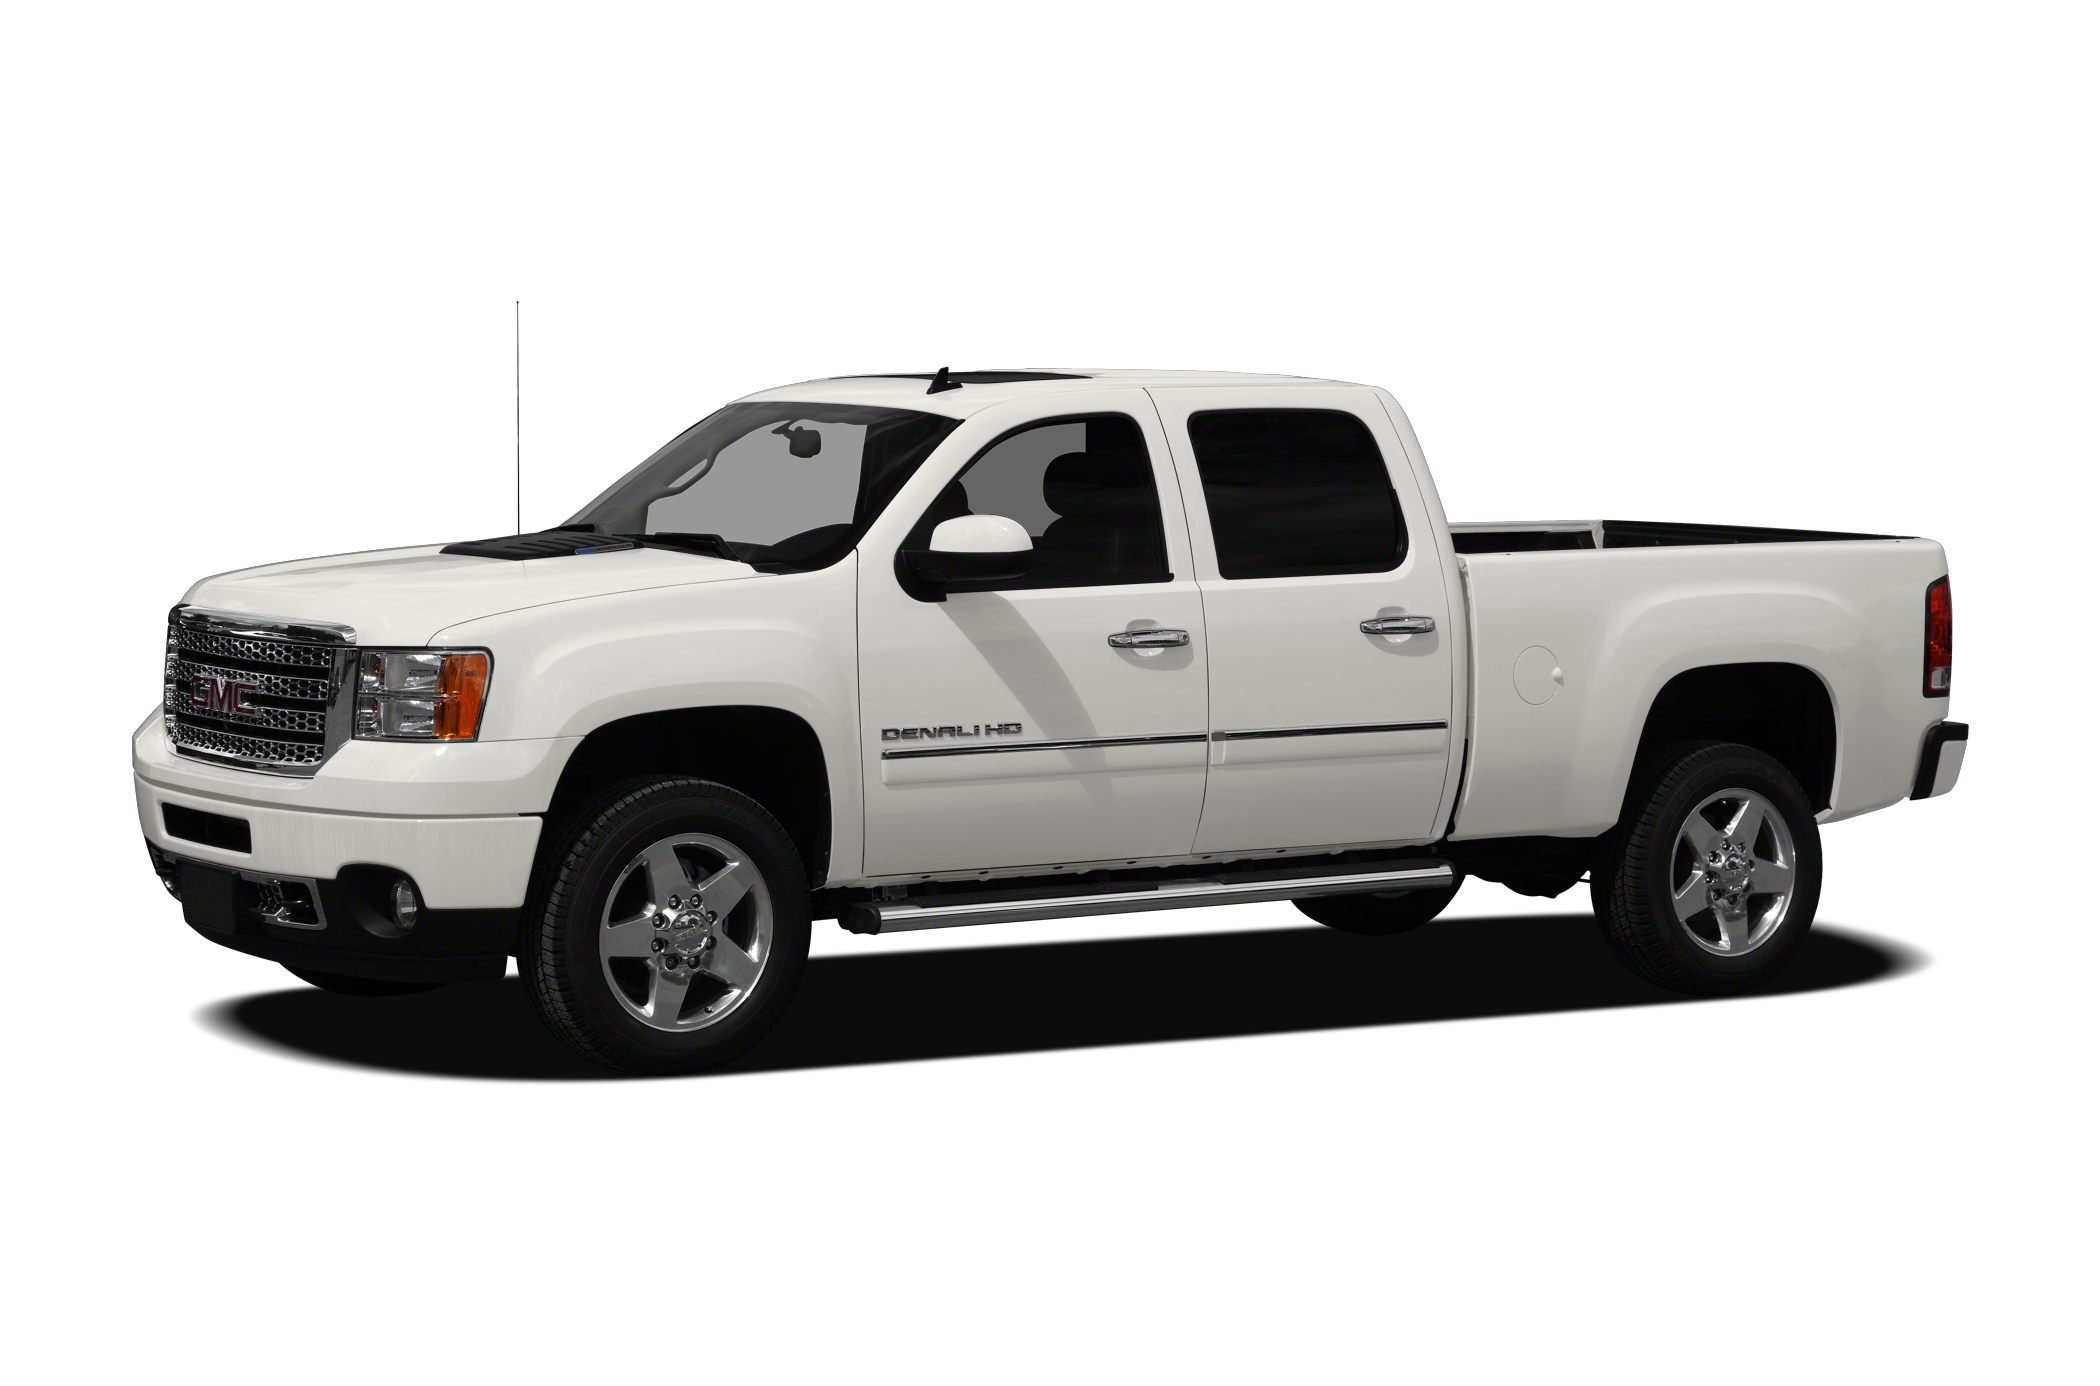 2012 GMC Sierra 2500 Denali Crew Cab Pickup for sale in Grand Junction for $50,950 with 16,577 miles.